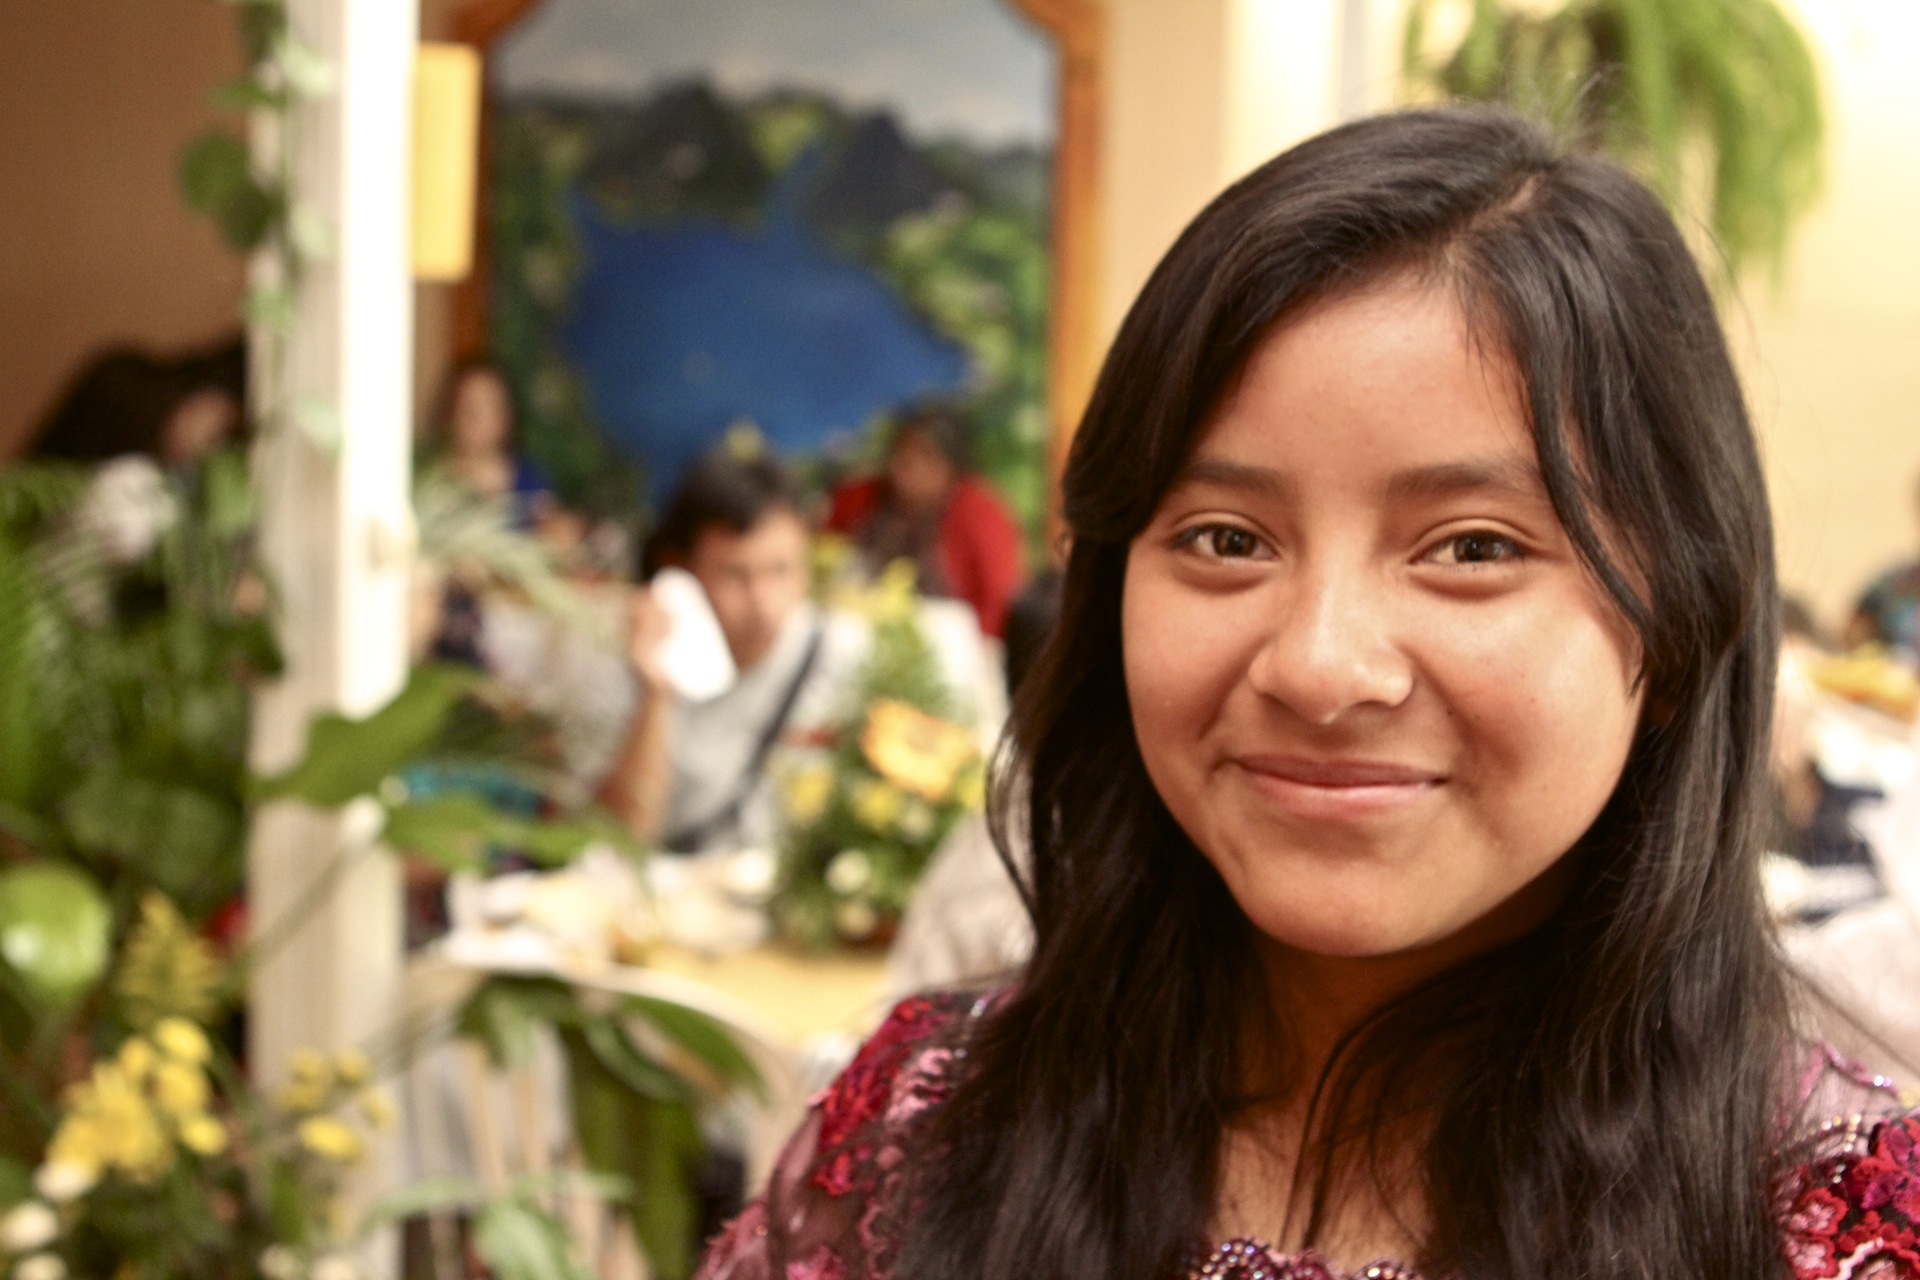 Lidia Lopic Chiyal, young leader, from the village of Buena Vista